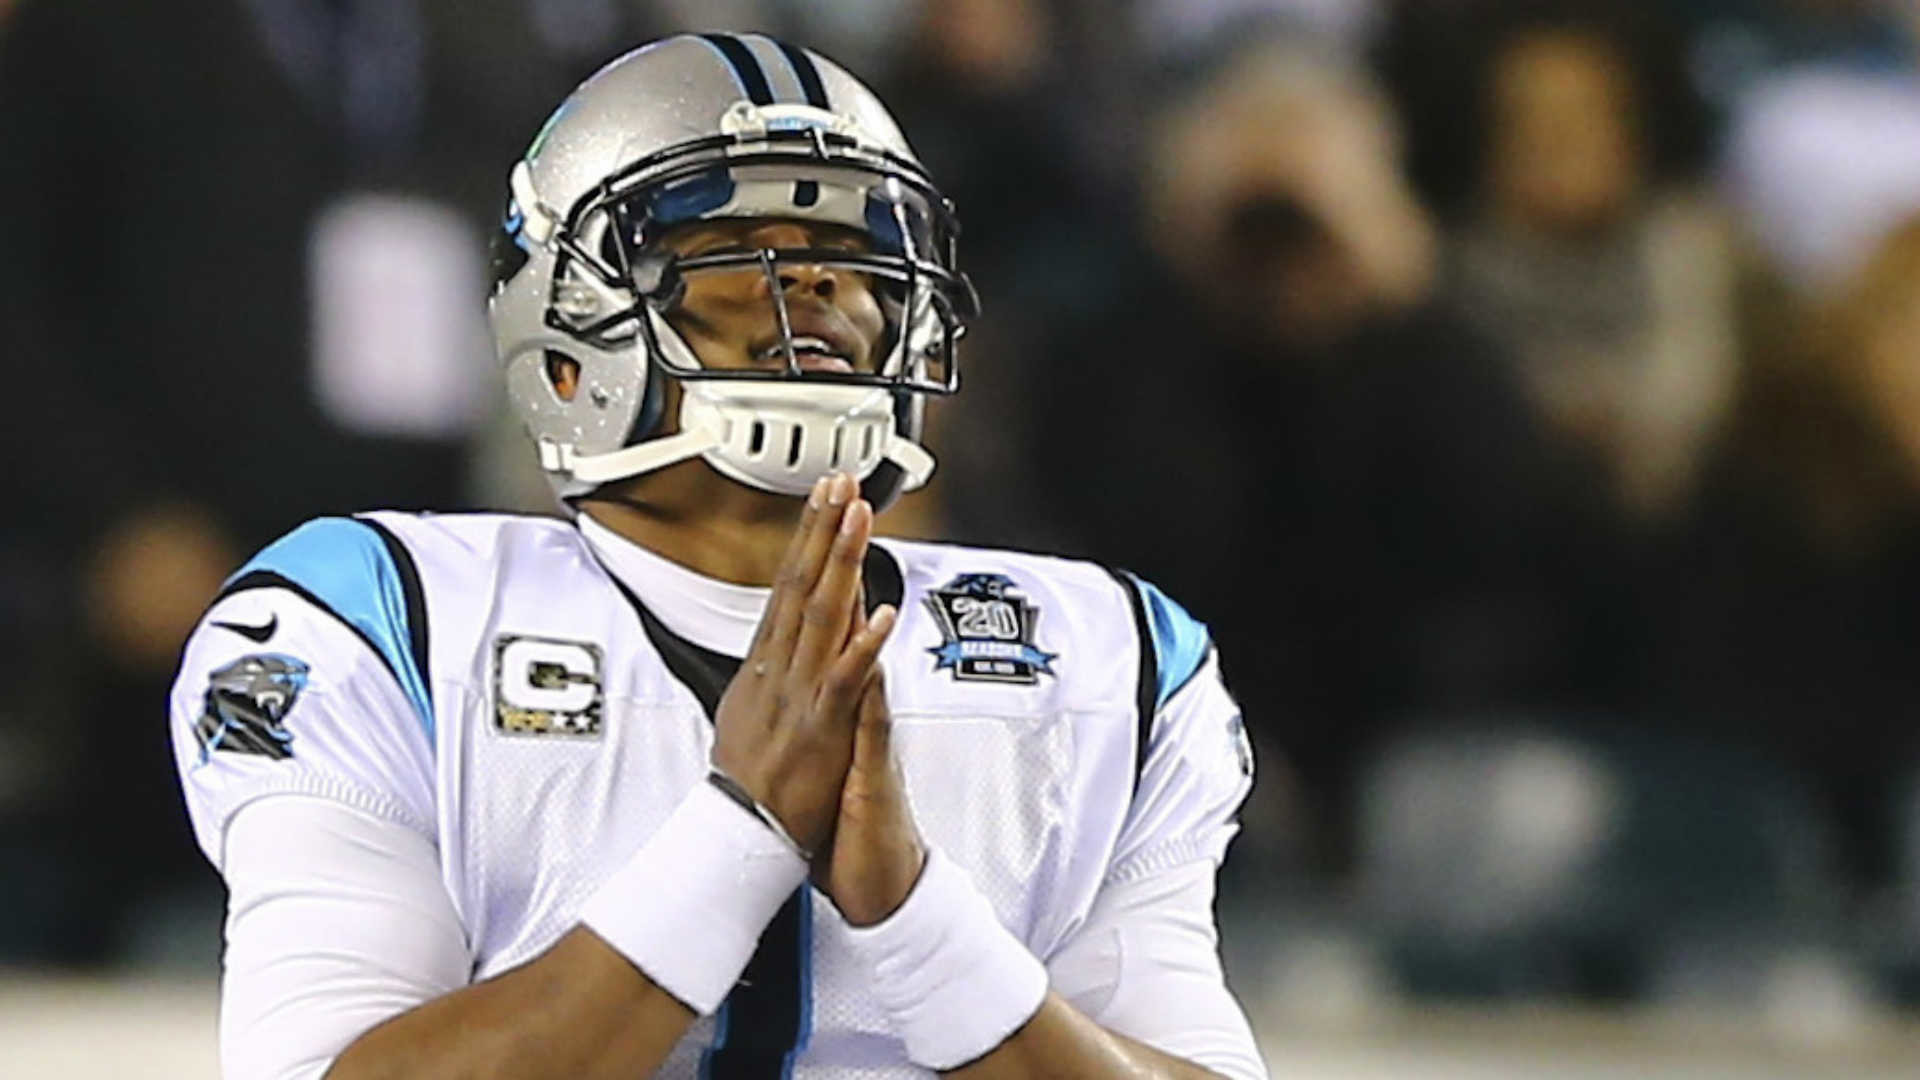 Panthers' Cam Newton needs help, health and headway | NFL | Sporting News